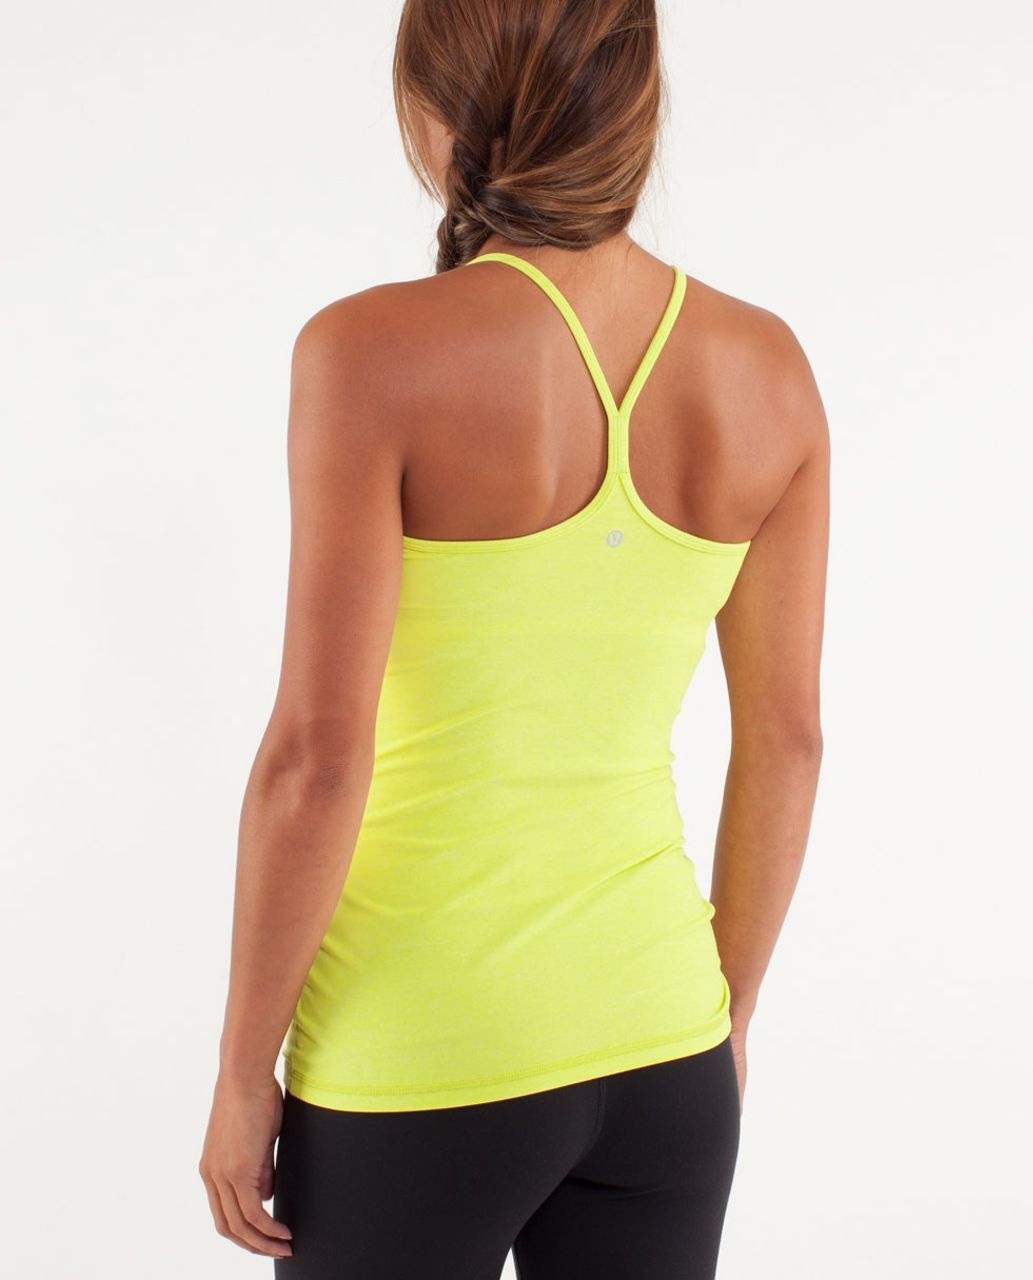 Lululemon Power Y Tank *Luon Light - Heathered Split Pea